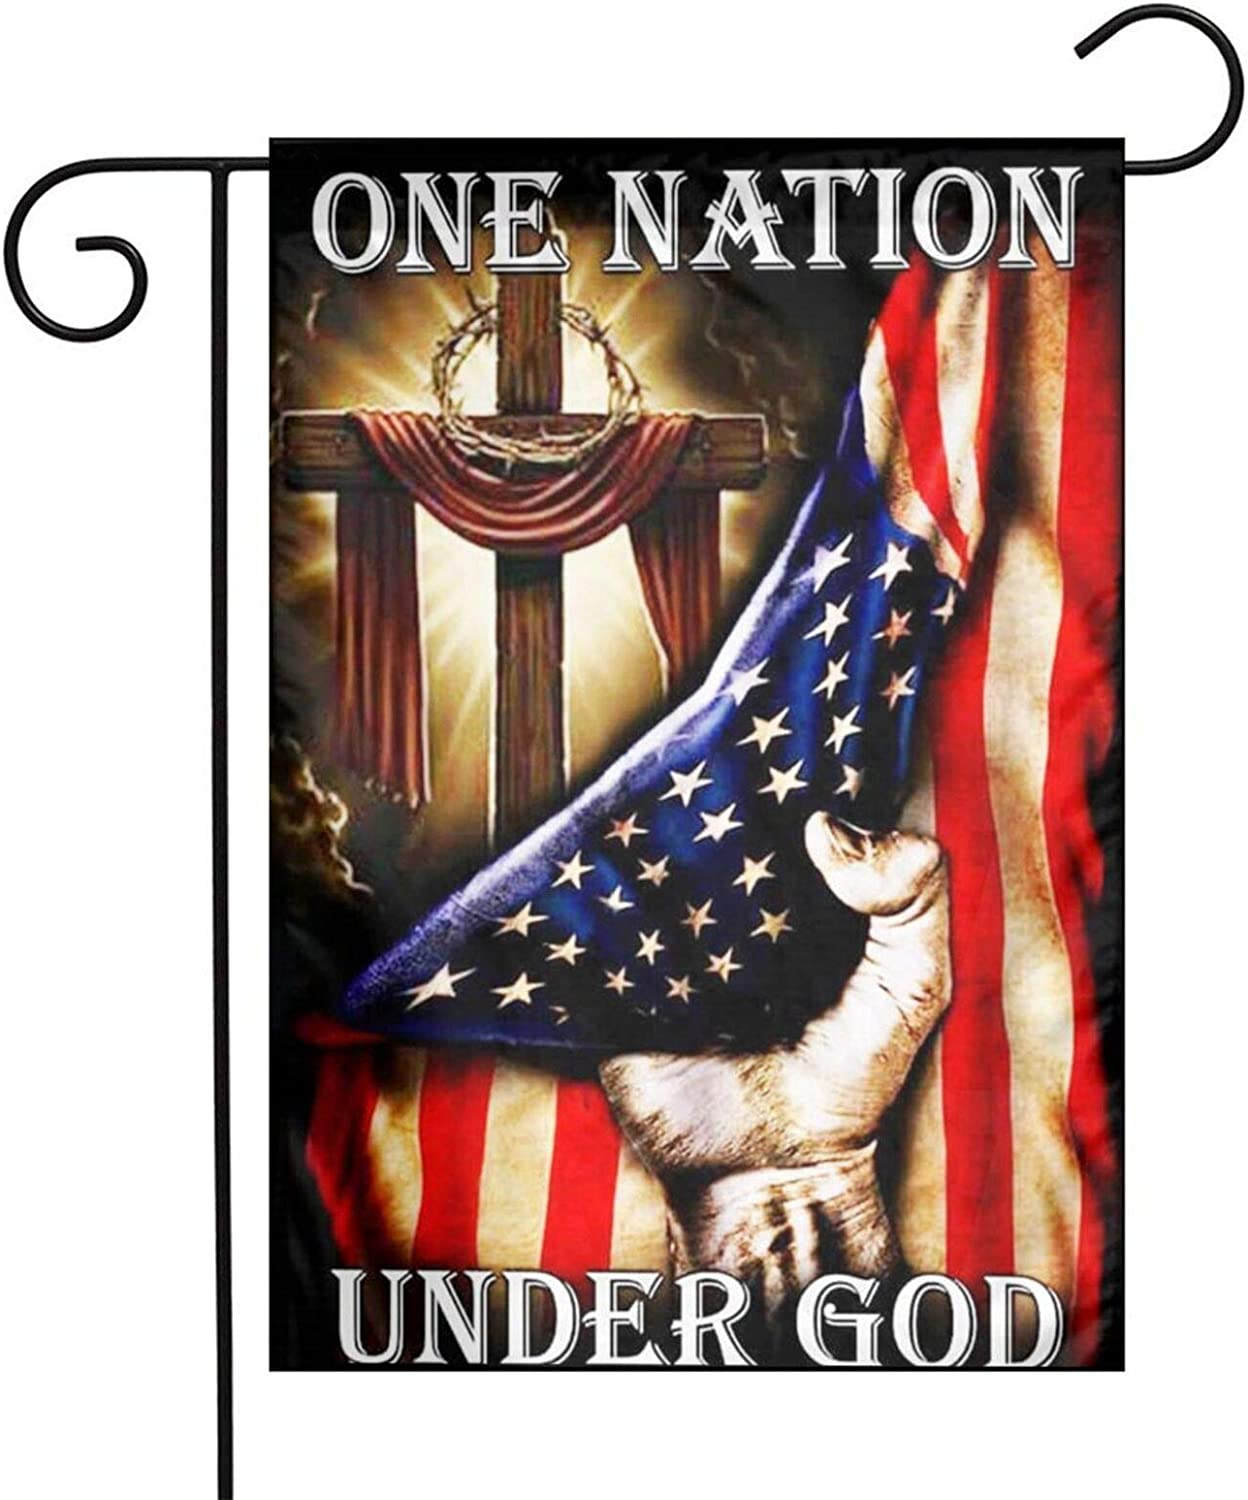 One Nation Under God,Jesus Christian Cross American Patriotic Garden Flags 12 X 18,Welcome/Farmhouse/Outdoor/Decor/Front Porch/Patriotic Yard Flag